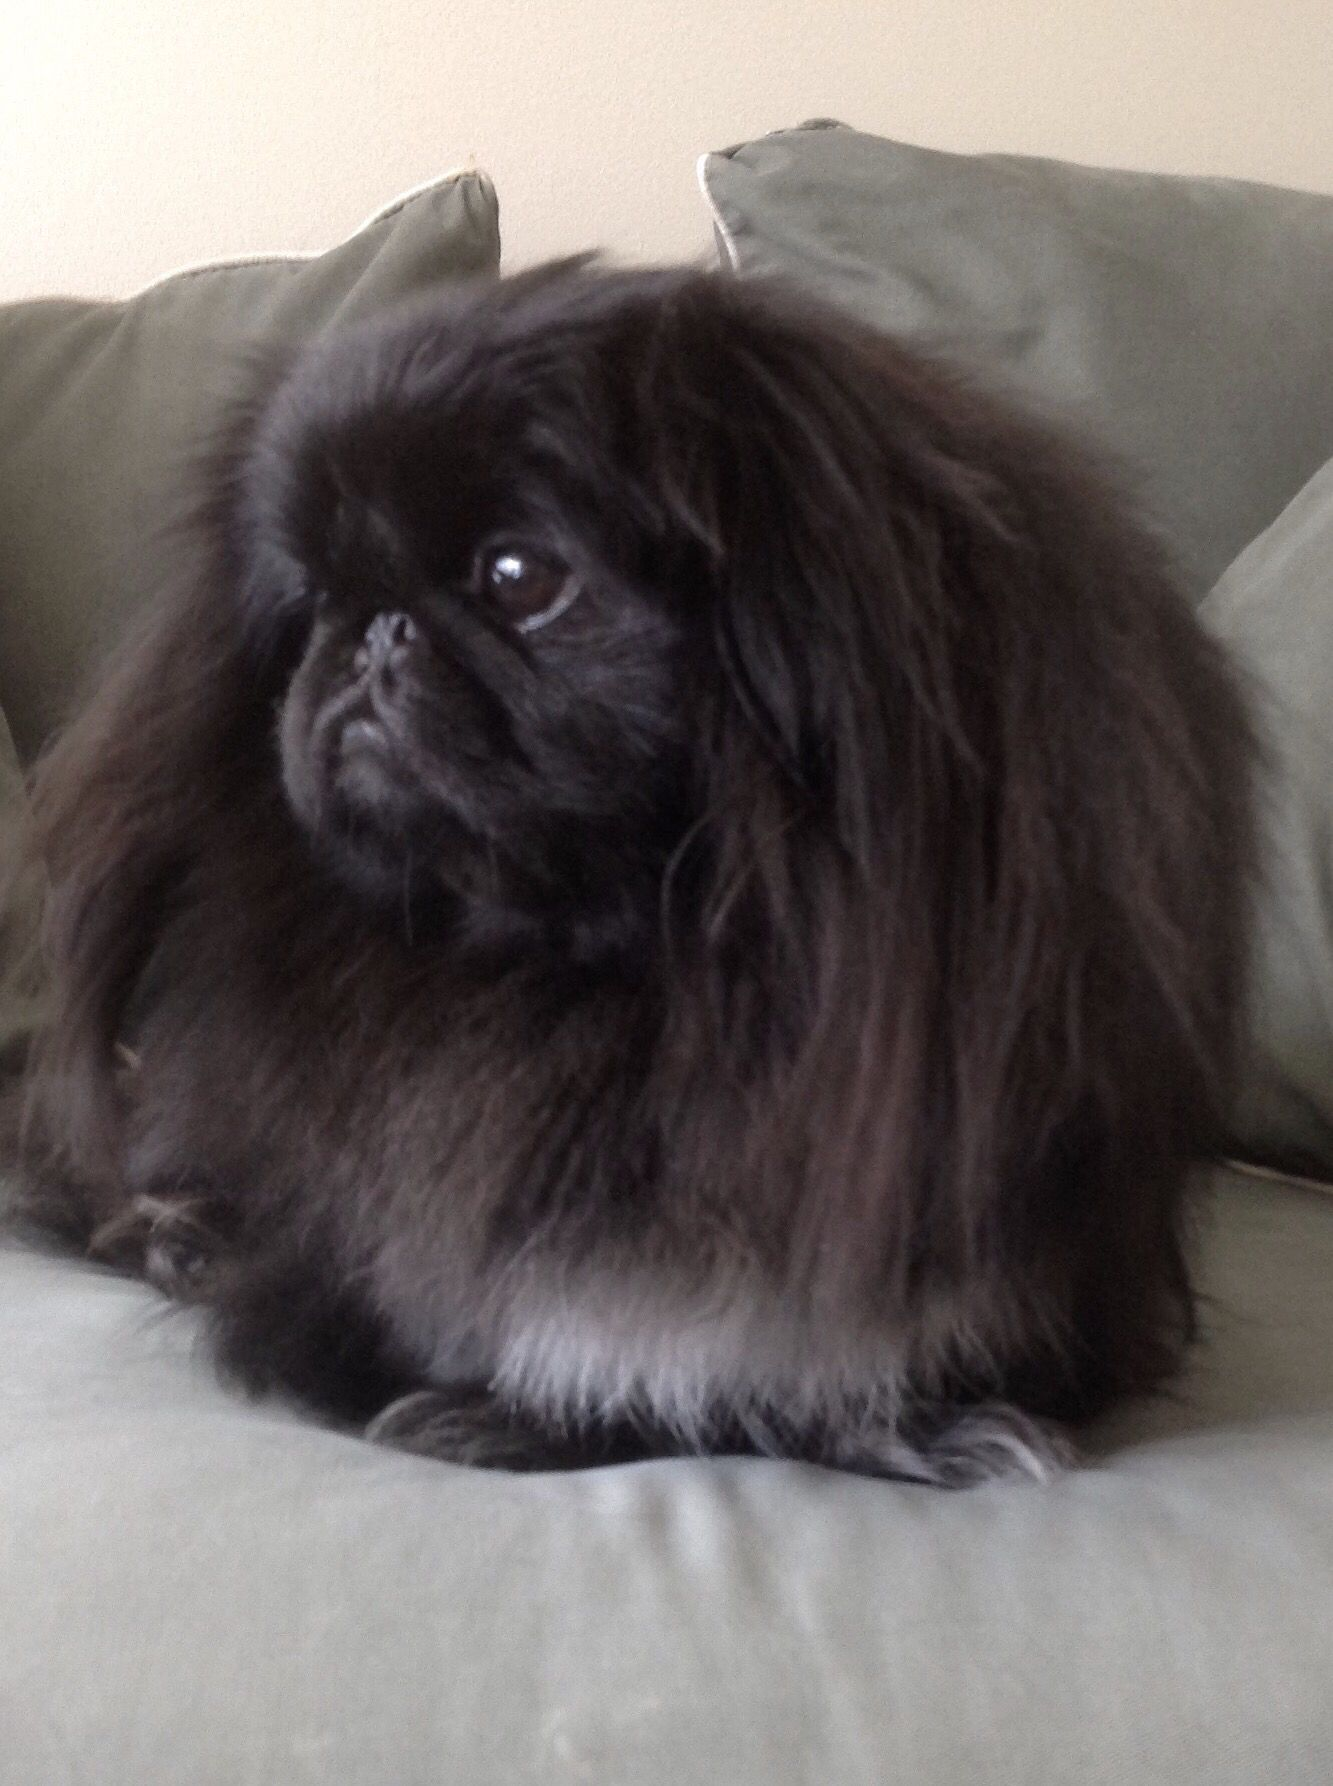 Deep in reflection......beautiful black Peke!